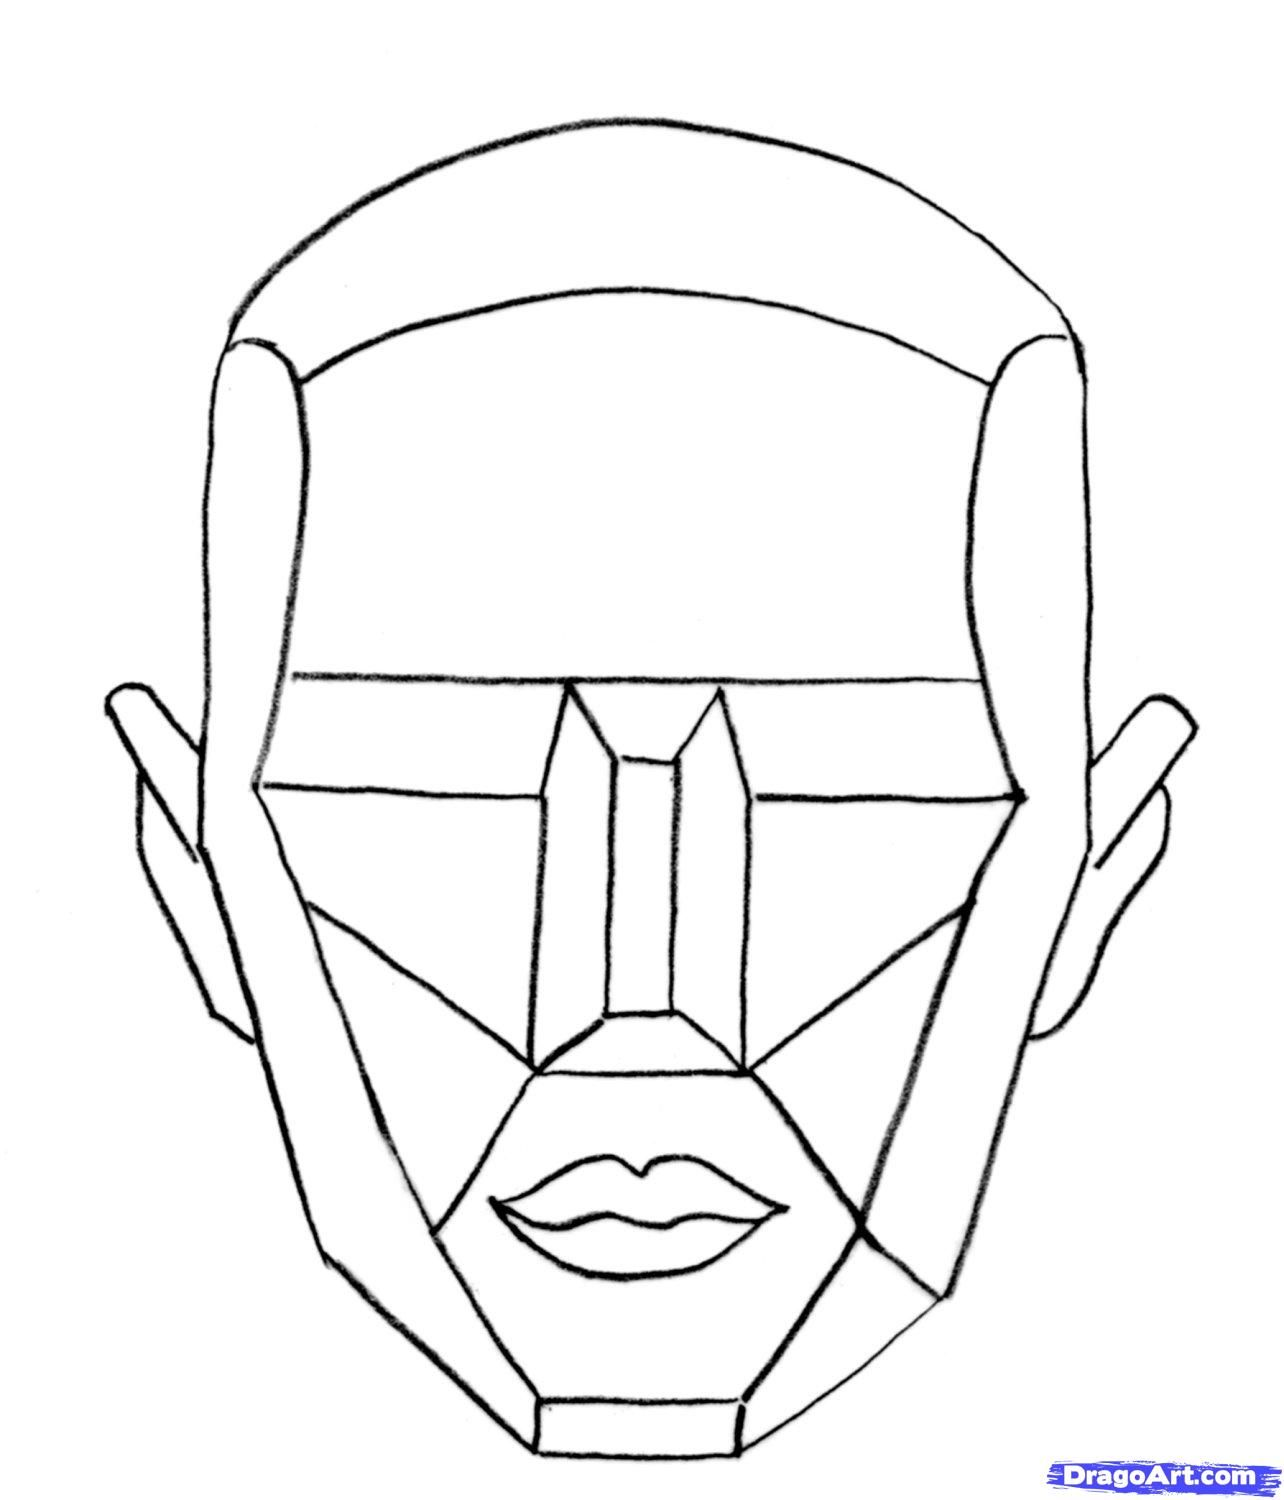 How To Draw The Female Head Tutorial Takes You Step By